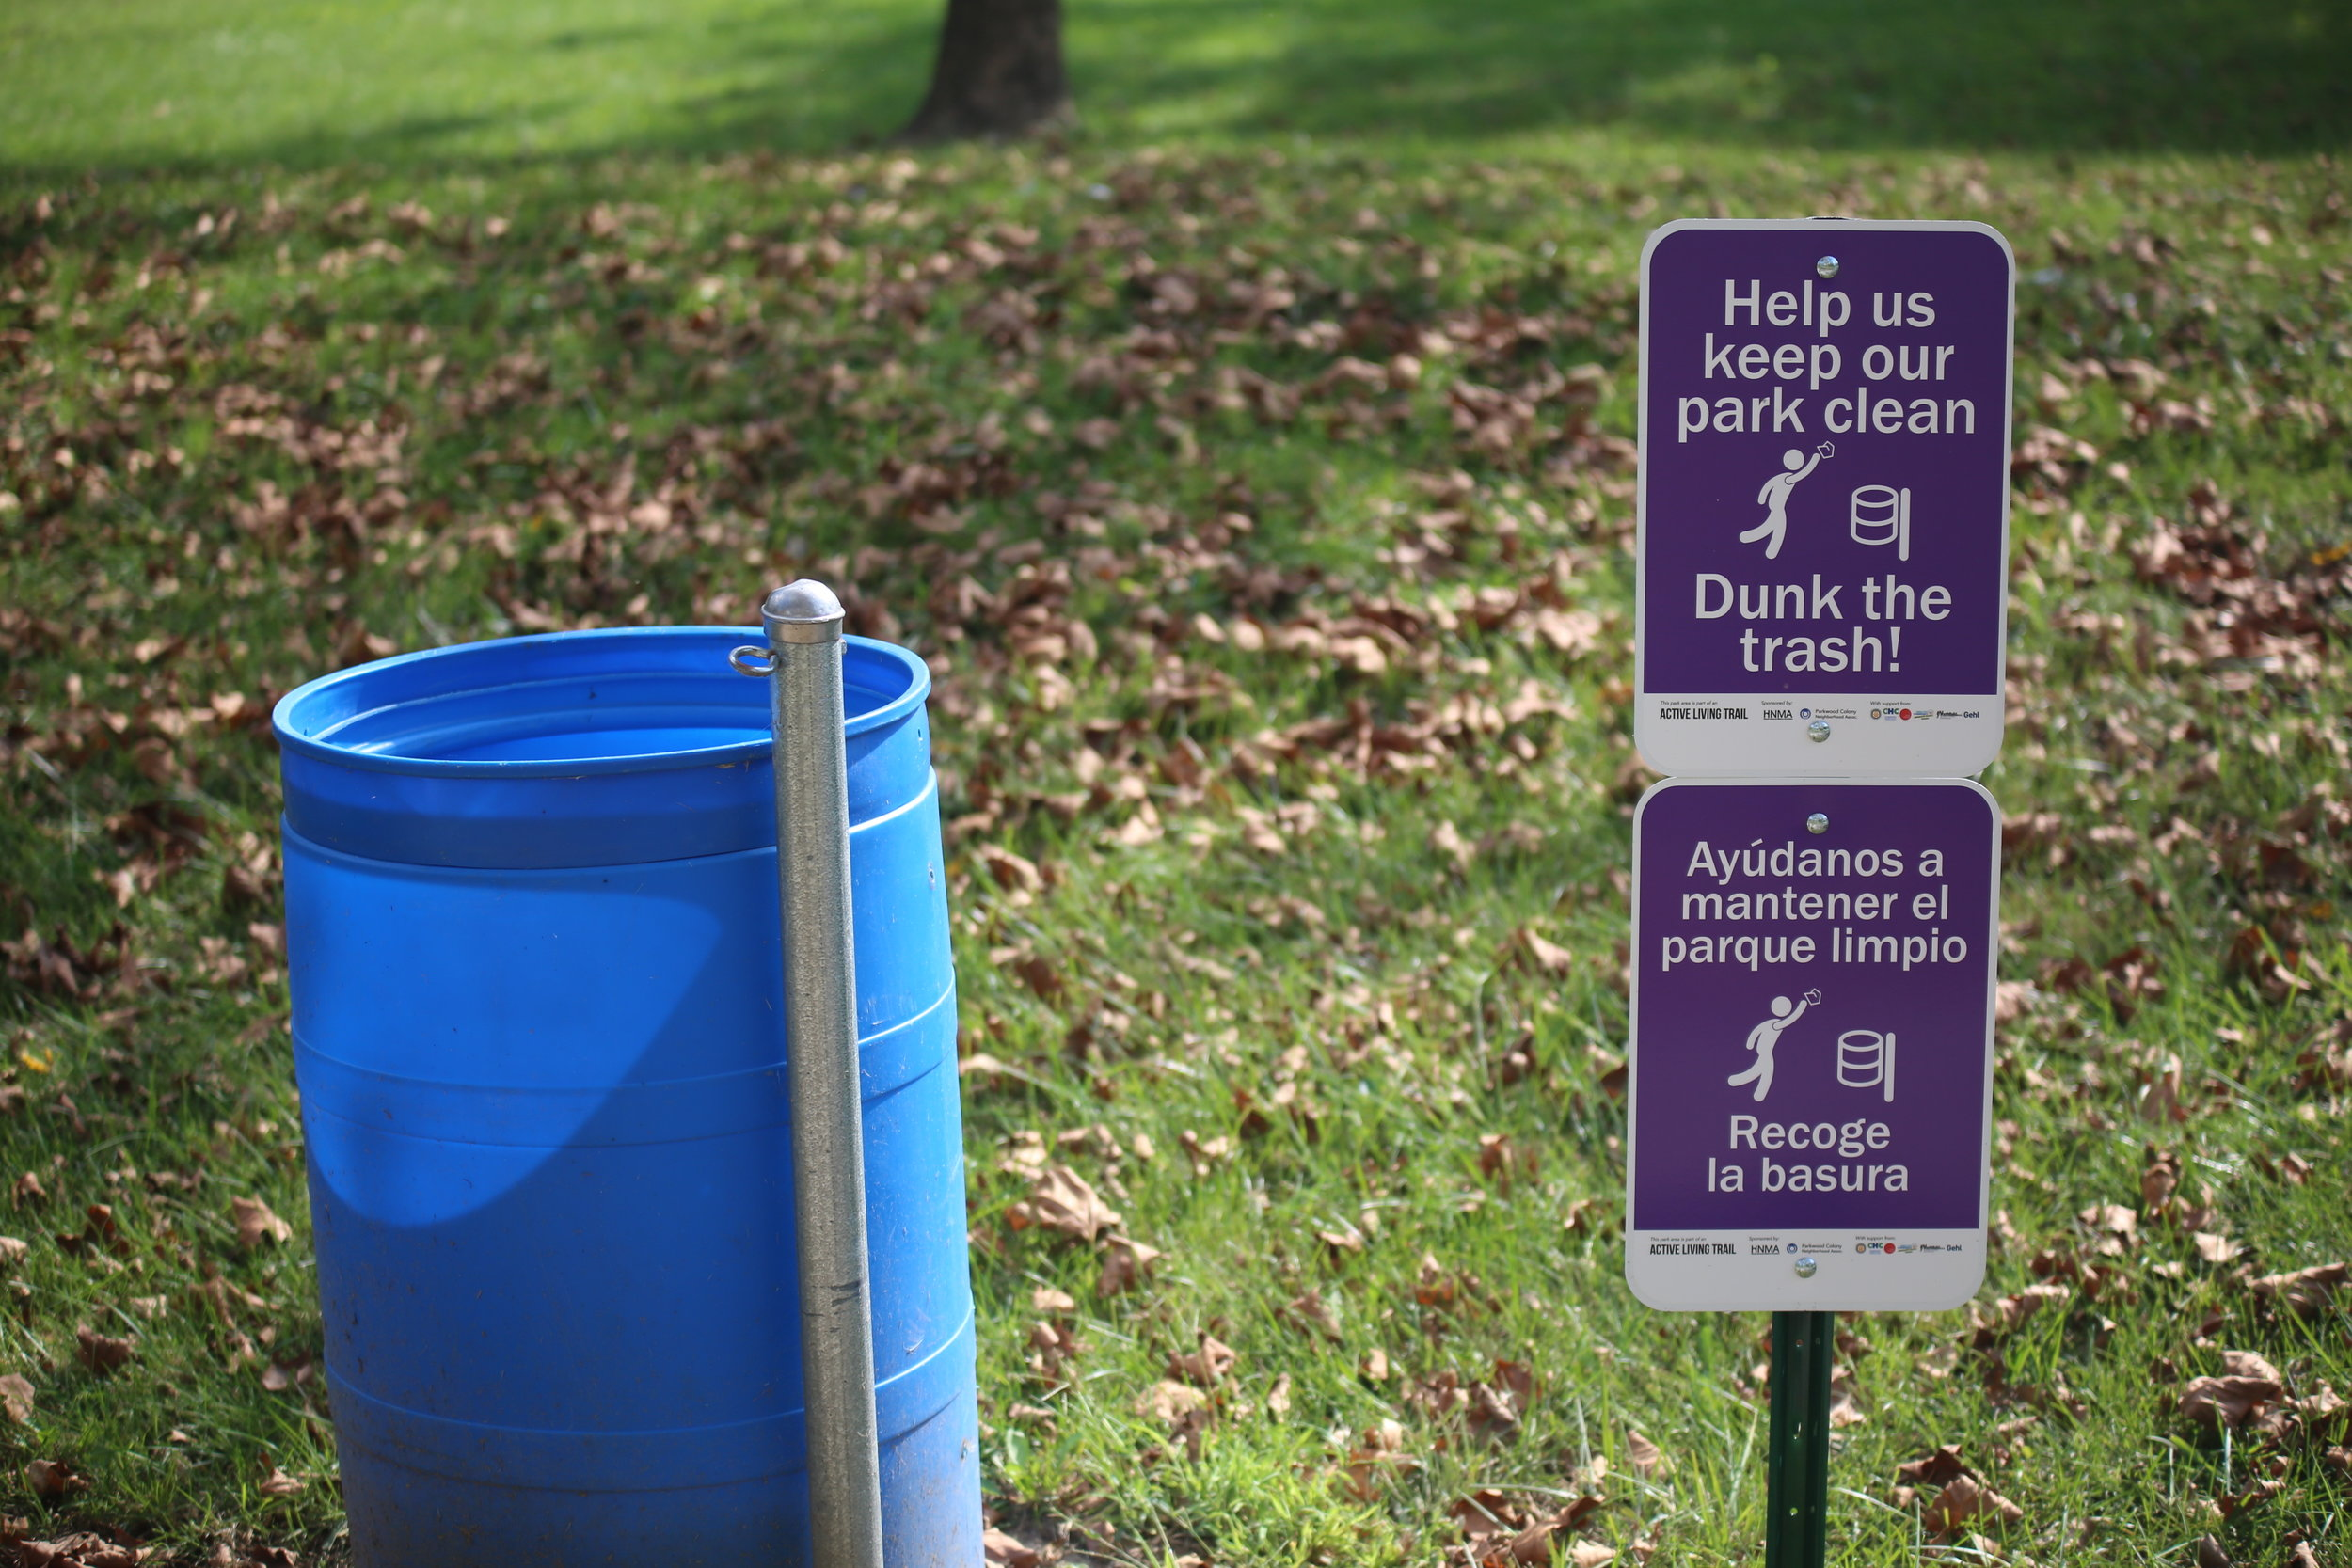 Culturally relevant signs promote the community's role in keeping their park clean.